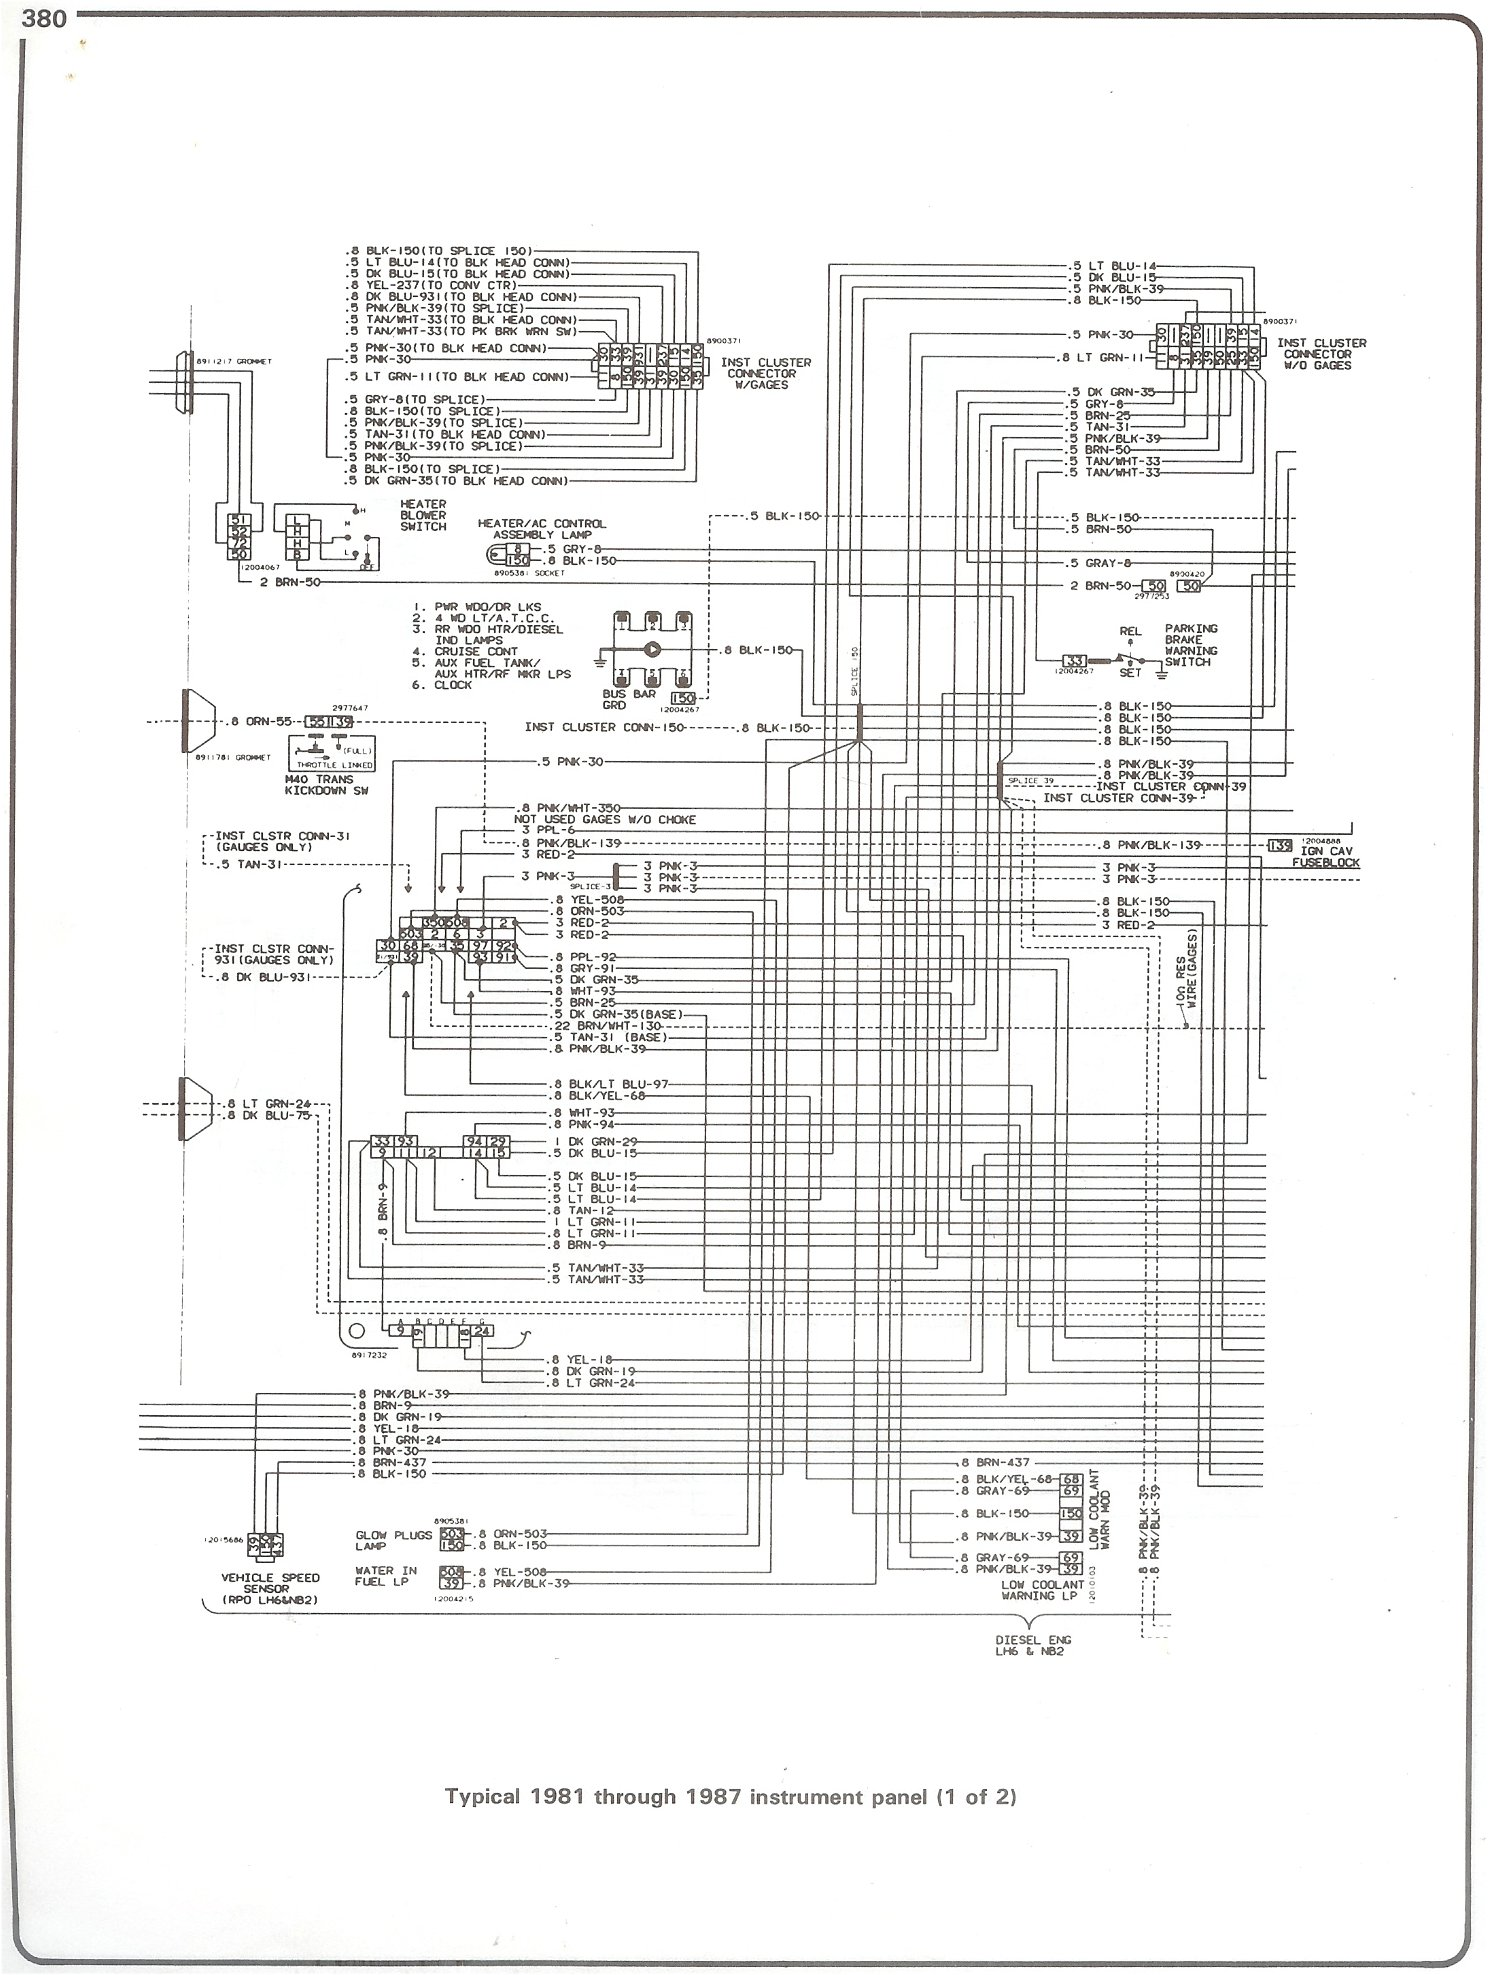 86 K20 Wiring Diagram - Wiring Diagram •  Motor Wire Harness Diagram on trailer wiring diagram, wire lights diagram, 1969 mustang wiring diagram, wire rope diagram, headlight diagram, actuator diagram, resistor diagram, wire gauge diagram, mirror diagram, schematic wiring diagram, throttle body diagram, cable diagram, fuse diagram, flywheel diagram, pin diagram, plug diagram, speedometer diagram, switch diagram, tube diagram, step diagram,